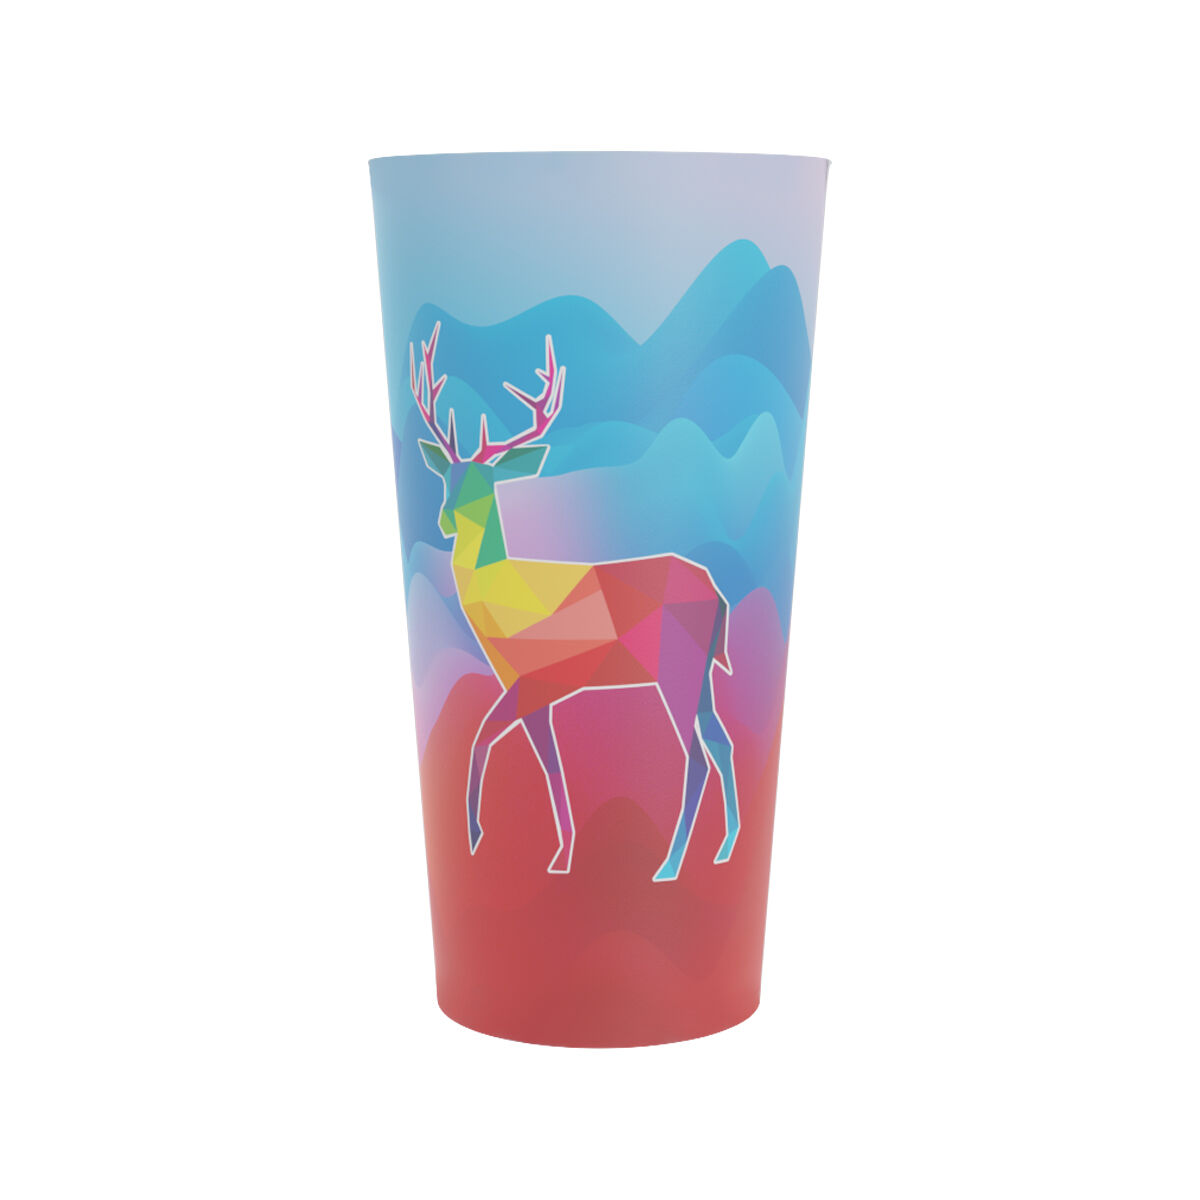 Large Reusable Plastic Cups printed full colour